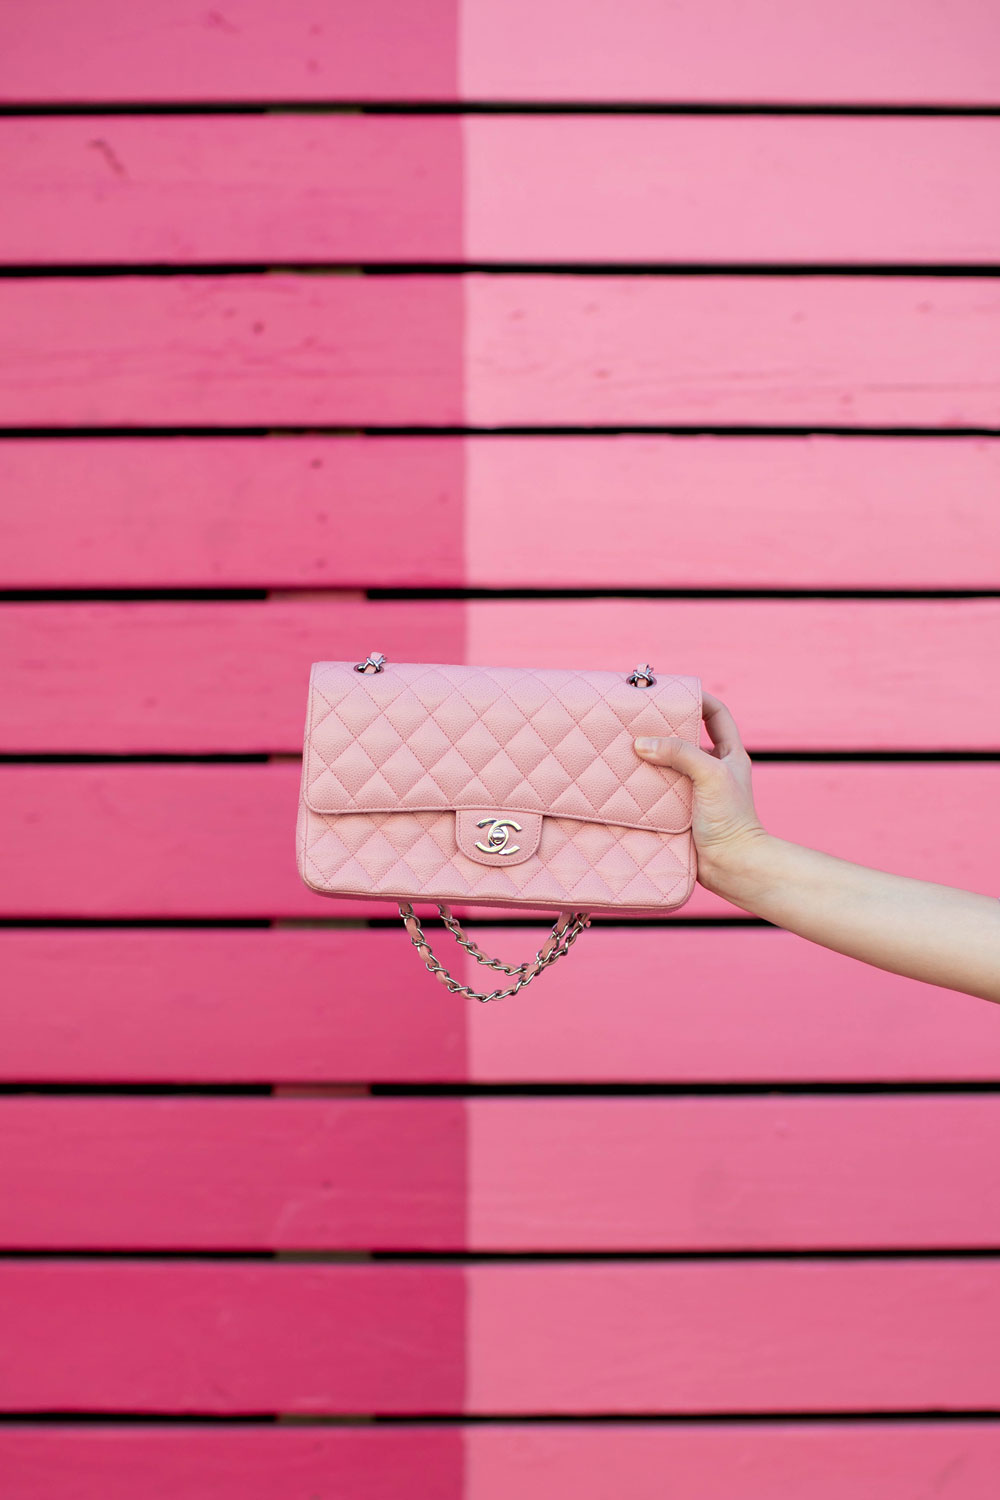 Pink Chanel Flap Chain Bag